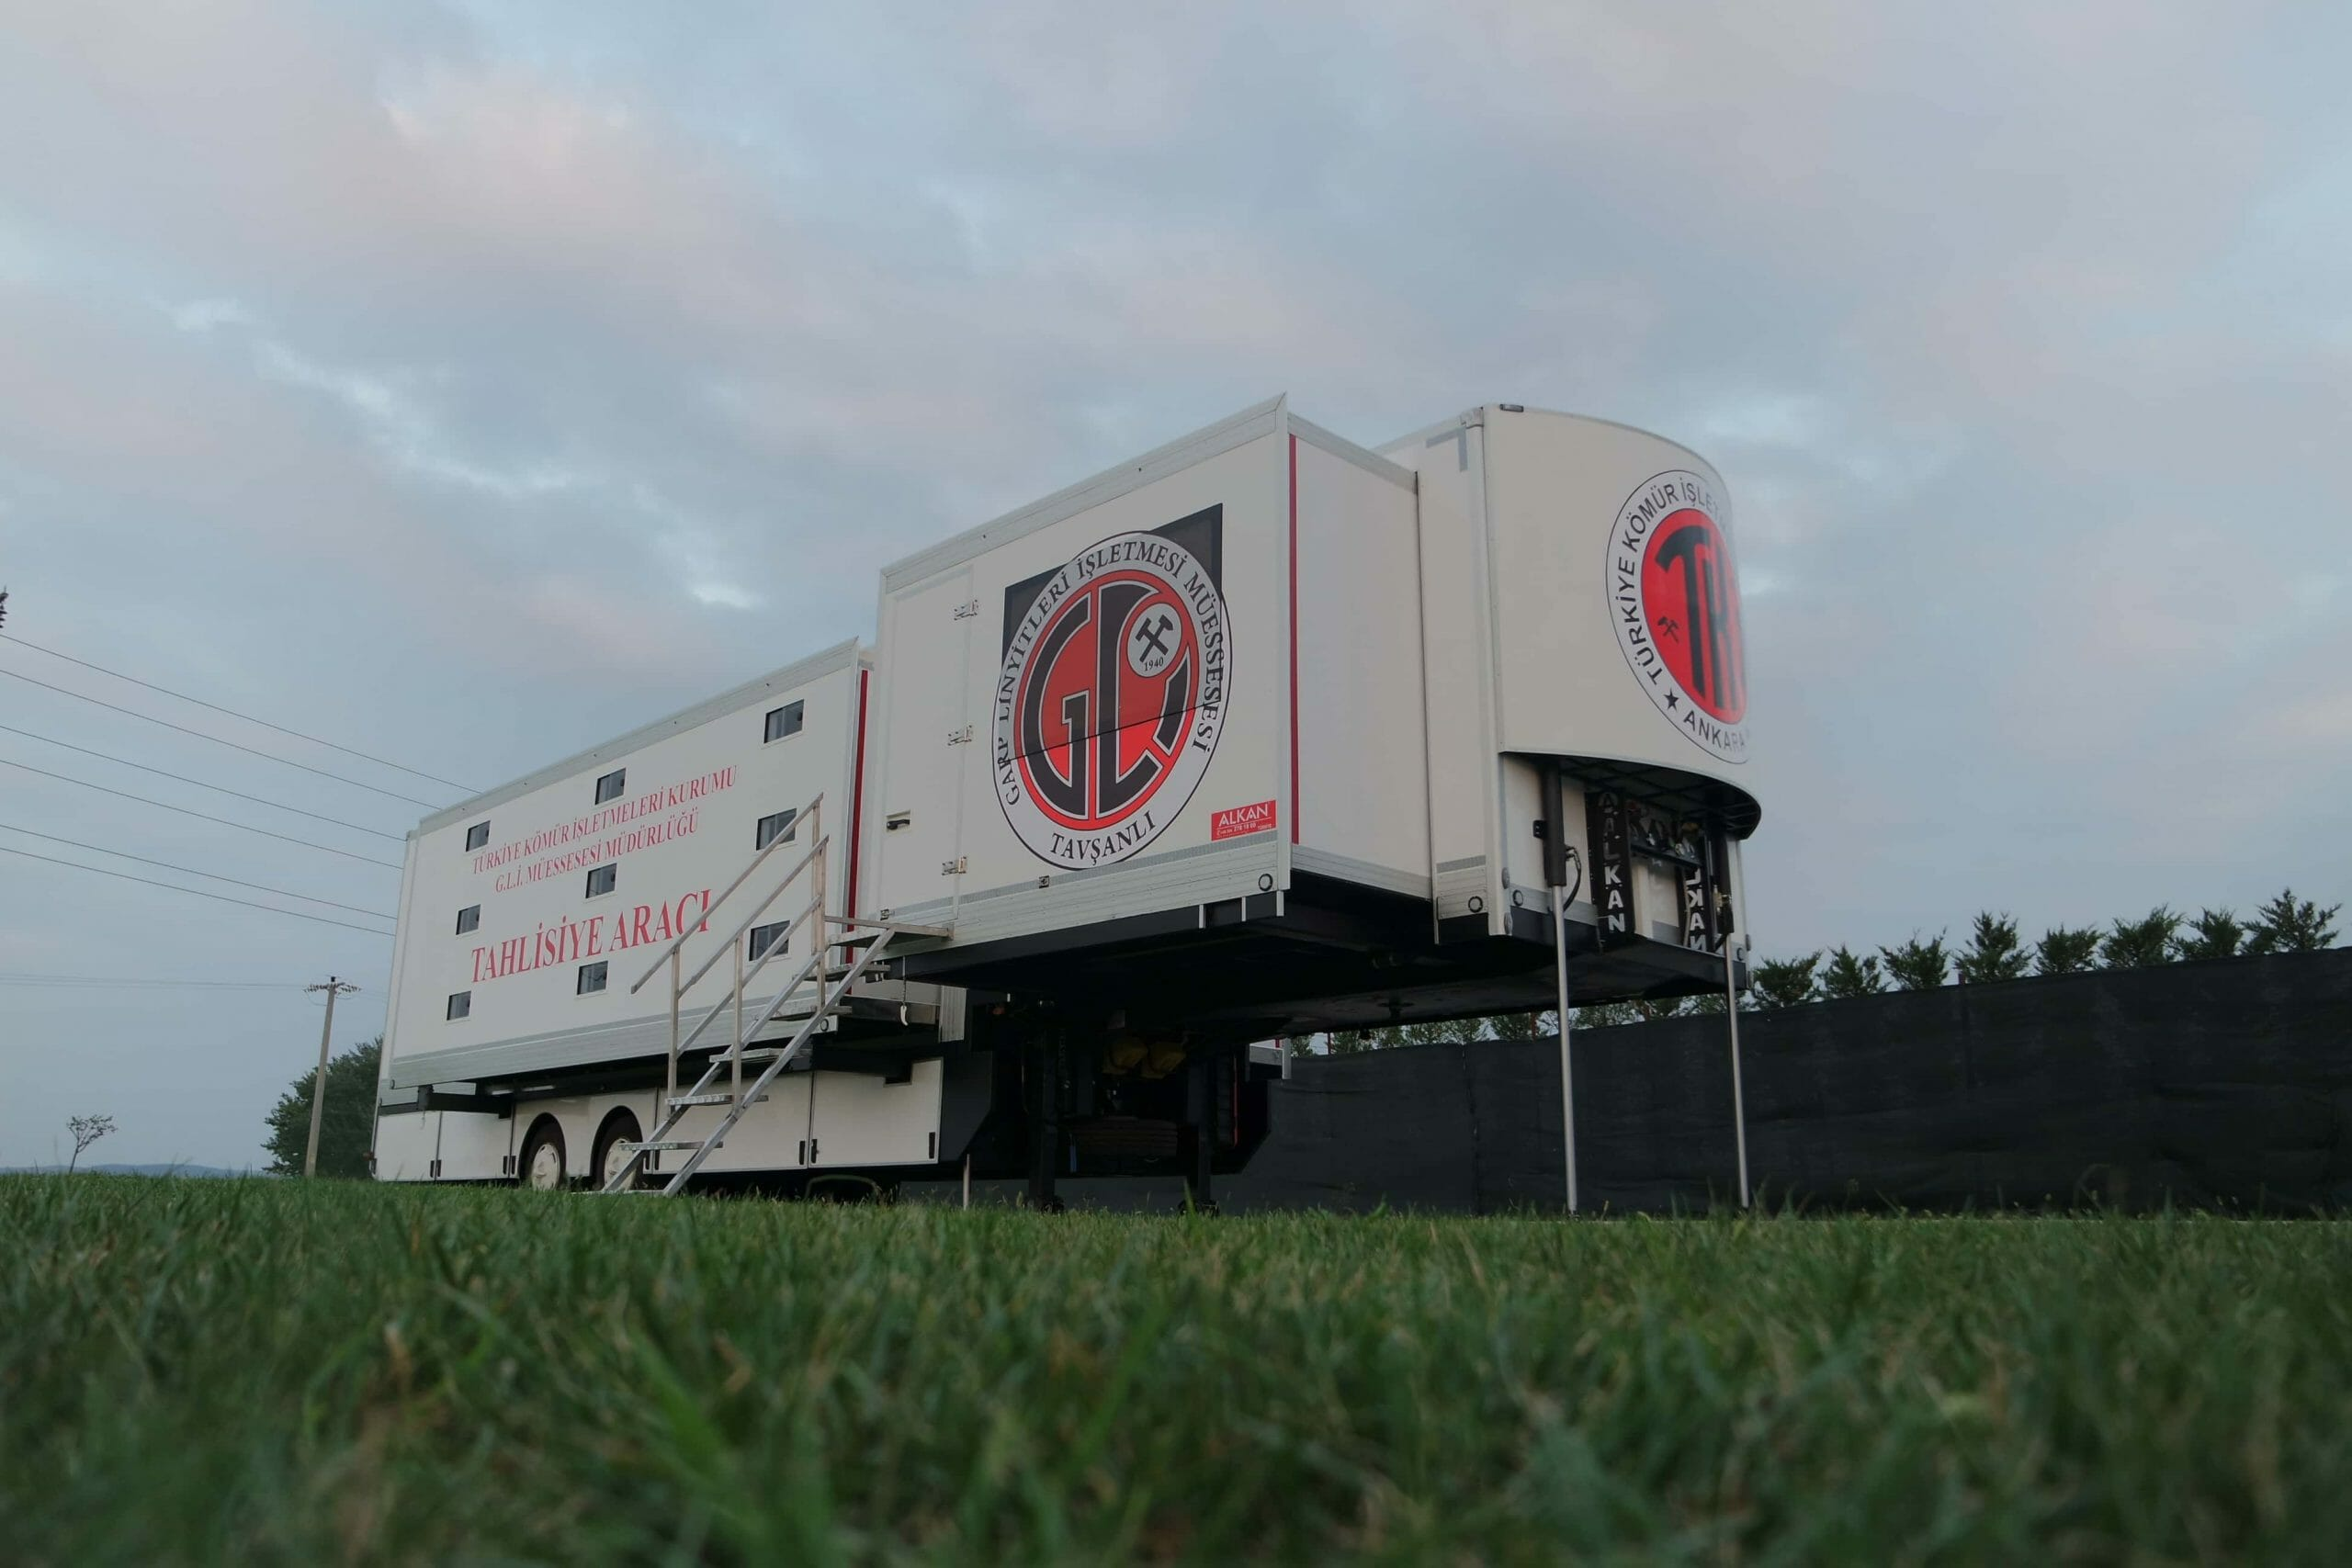 mobile-dormitory-trailer-vehicle-6-scaled.jpg